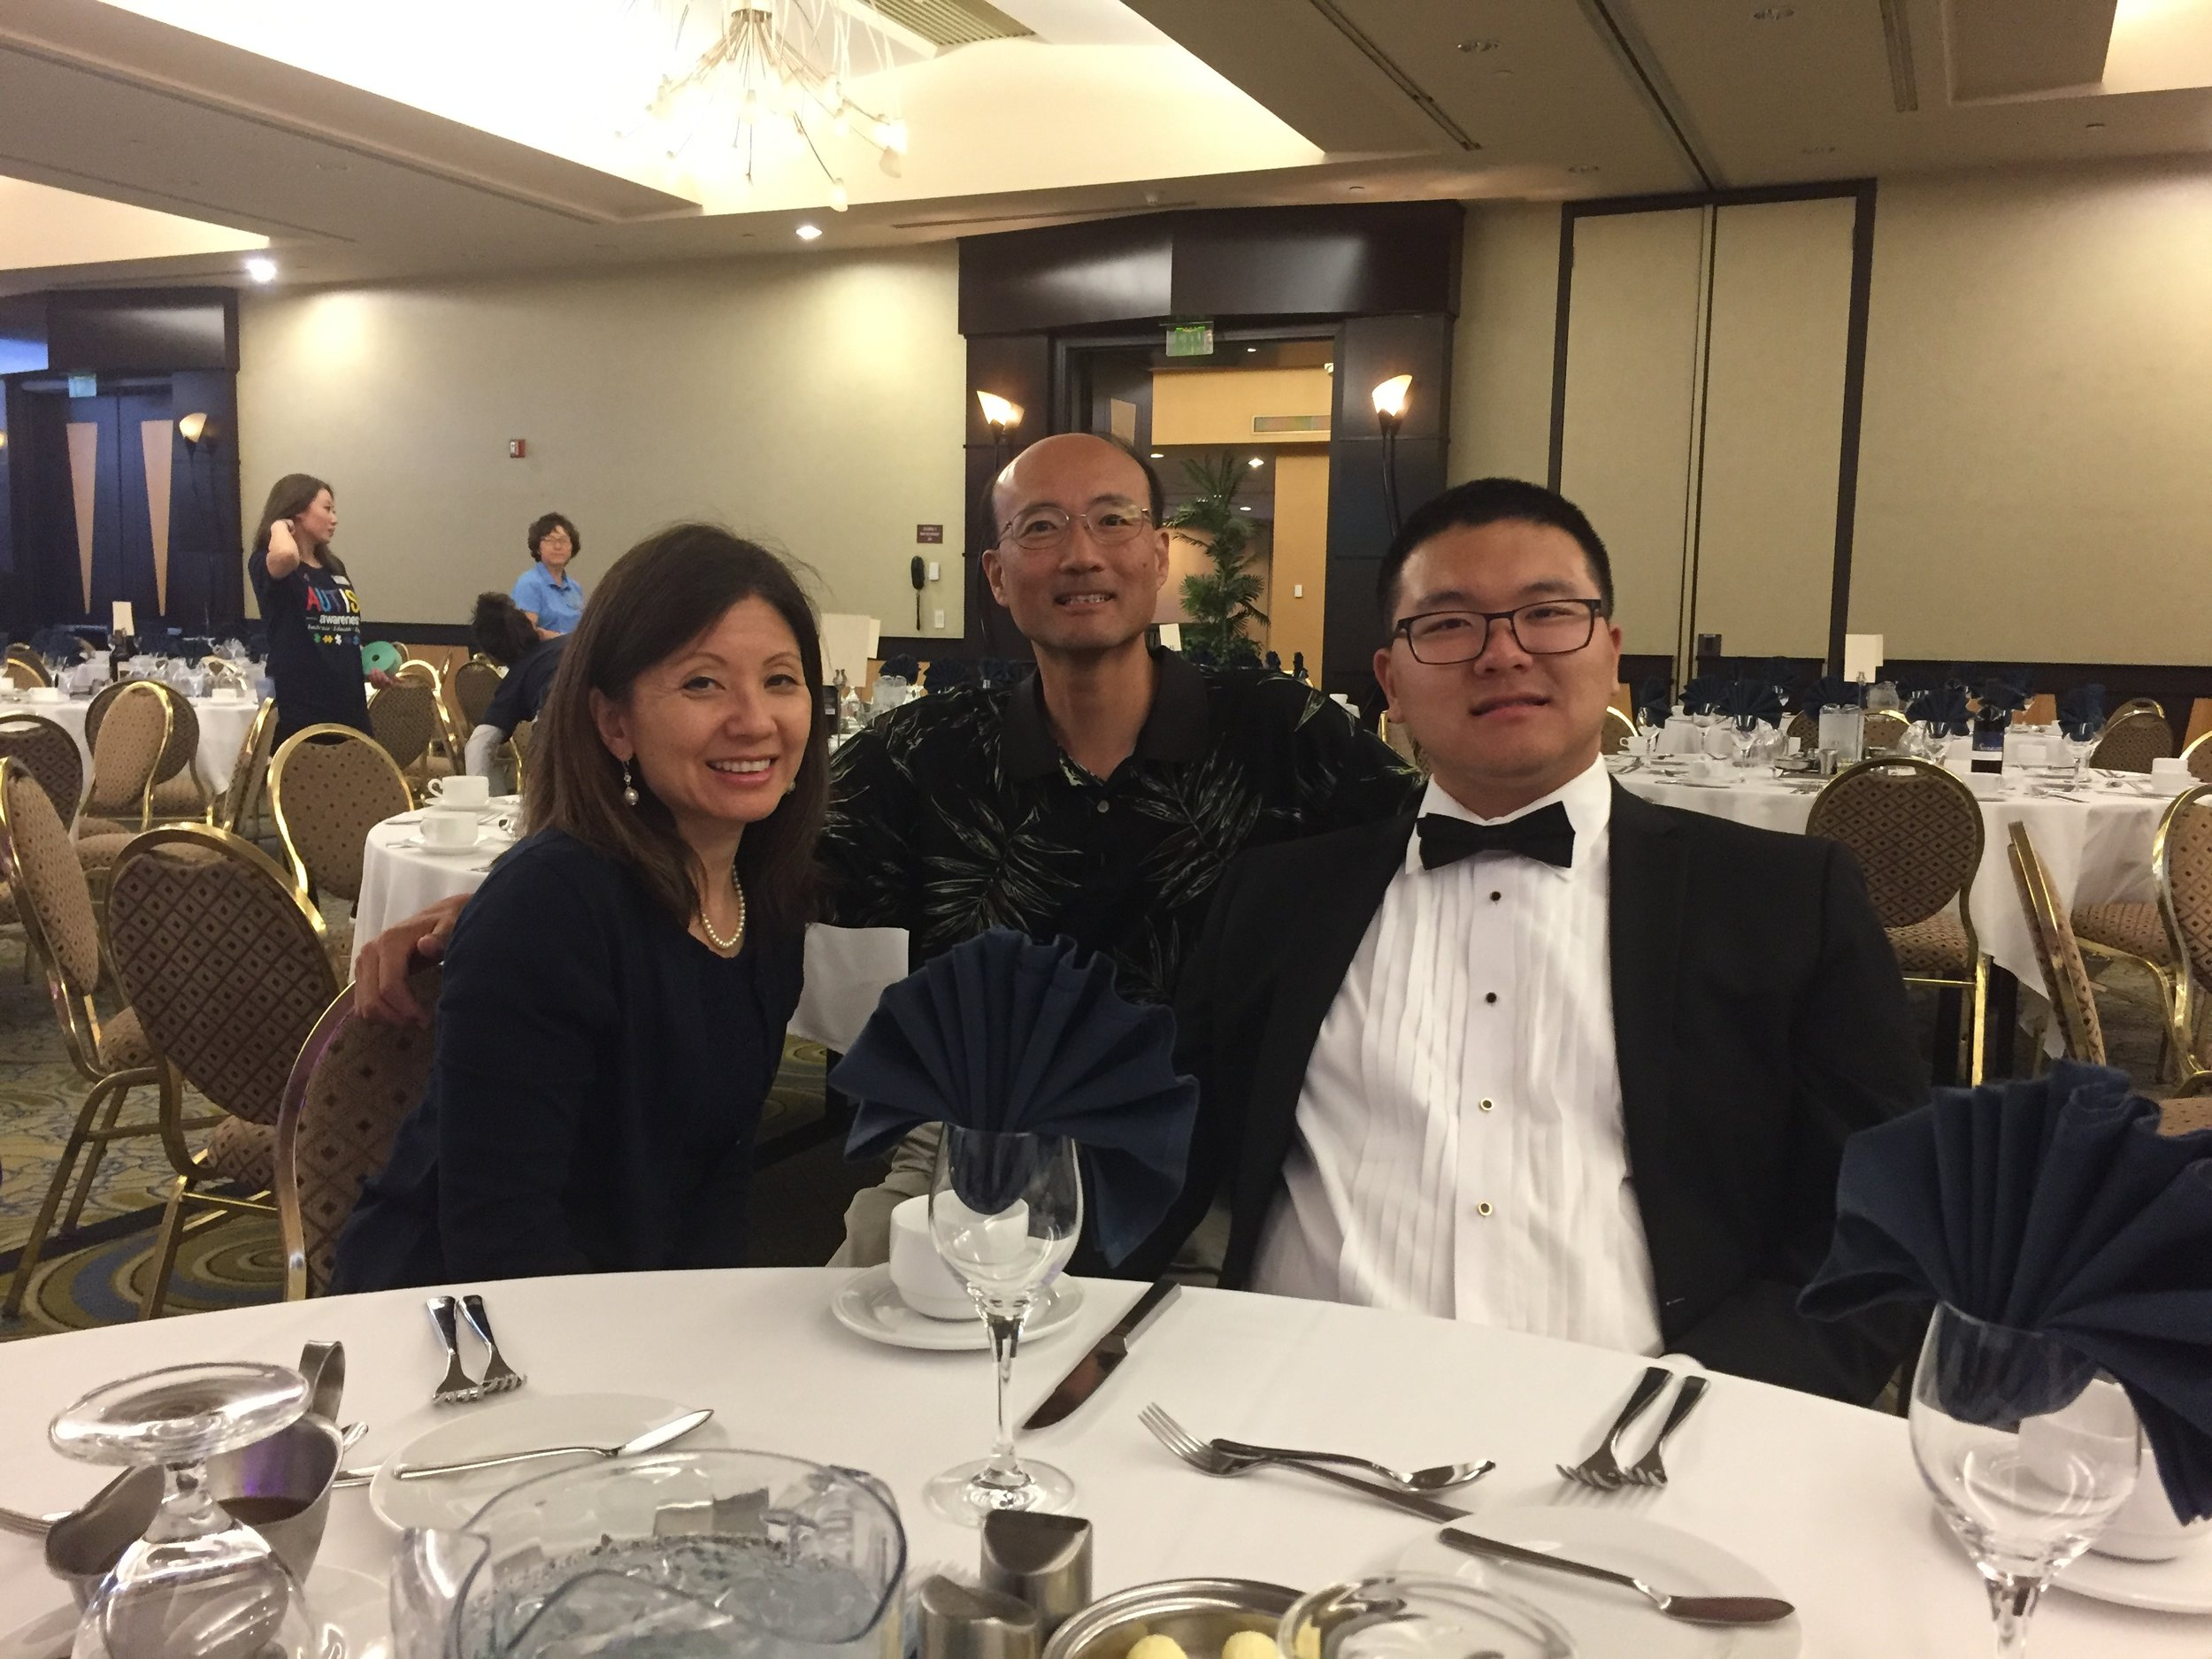 Wonkoo Chang and   Johnna   Cho with their son, Kevin, who played a clarinet solo for a fundraiser hosted by the Korean American Special Education Center in recognition of World Autism Awareness Day. Photo courtesy: Johnna Cho